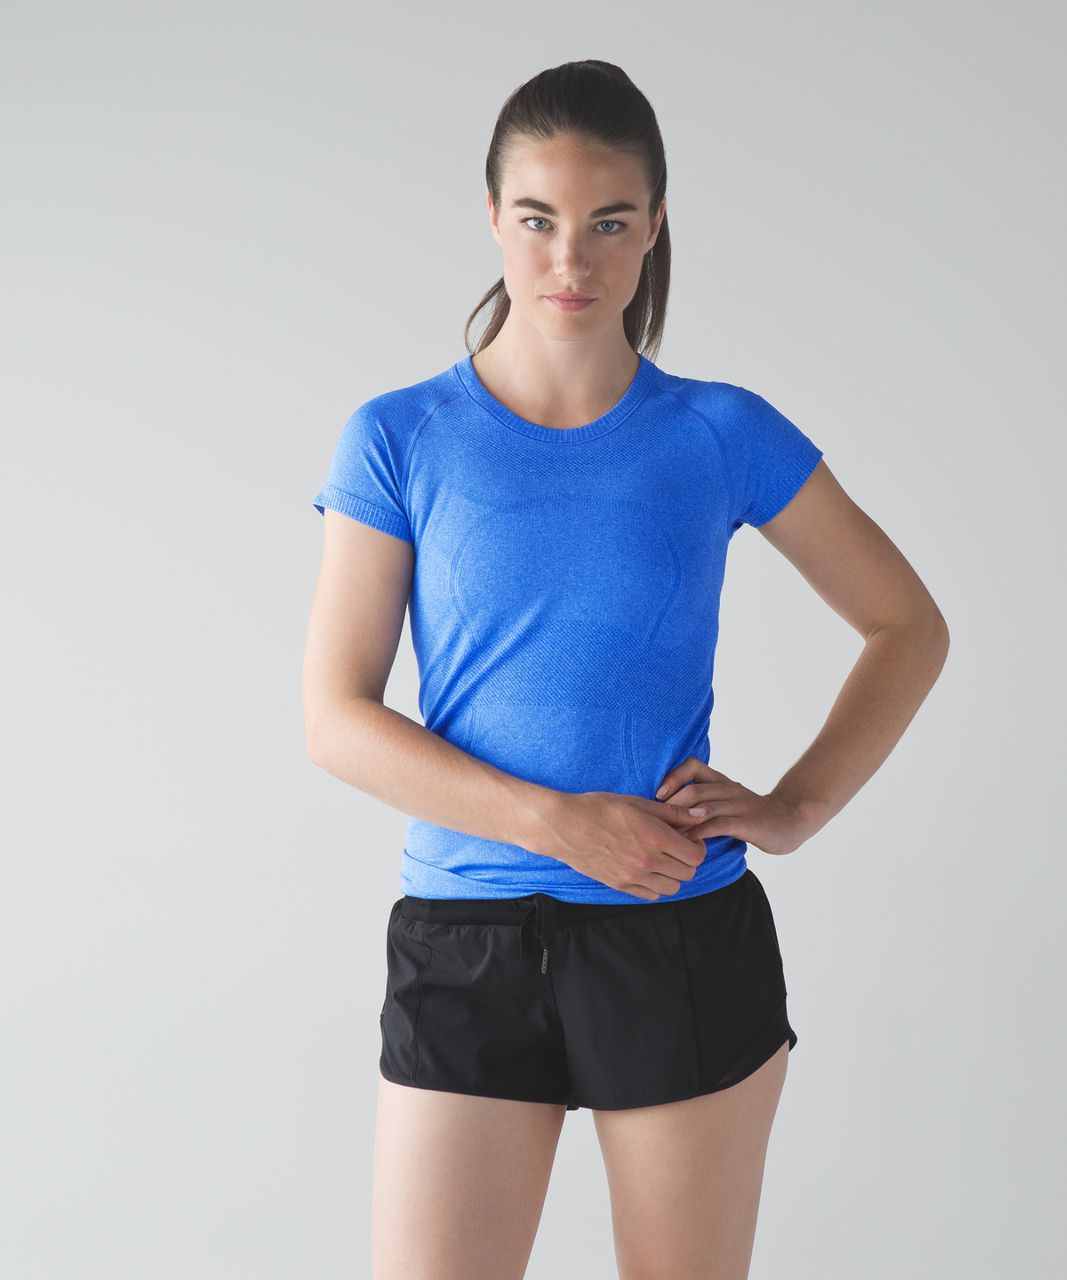 Lululemon Swiftly Tech Short Sleeve Crew - Heathered Harbor Blue